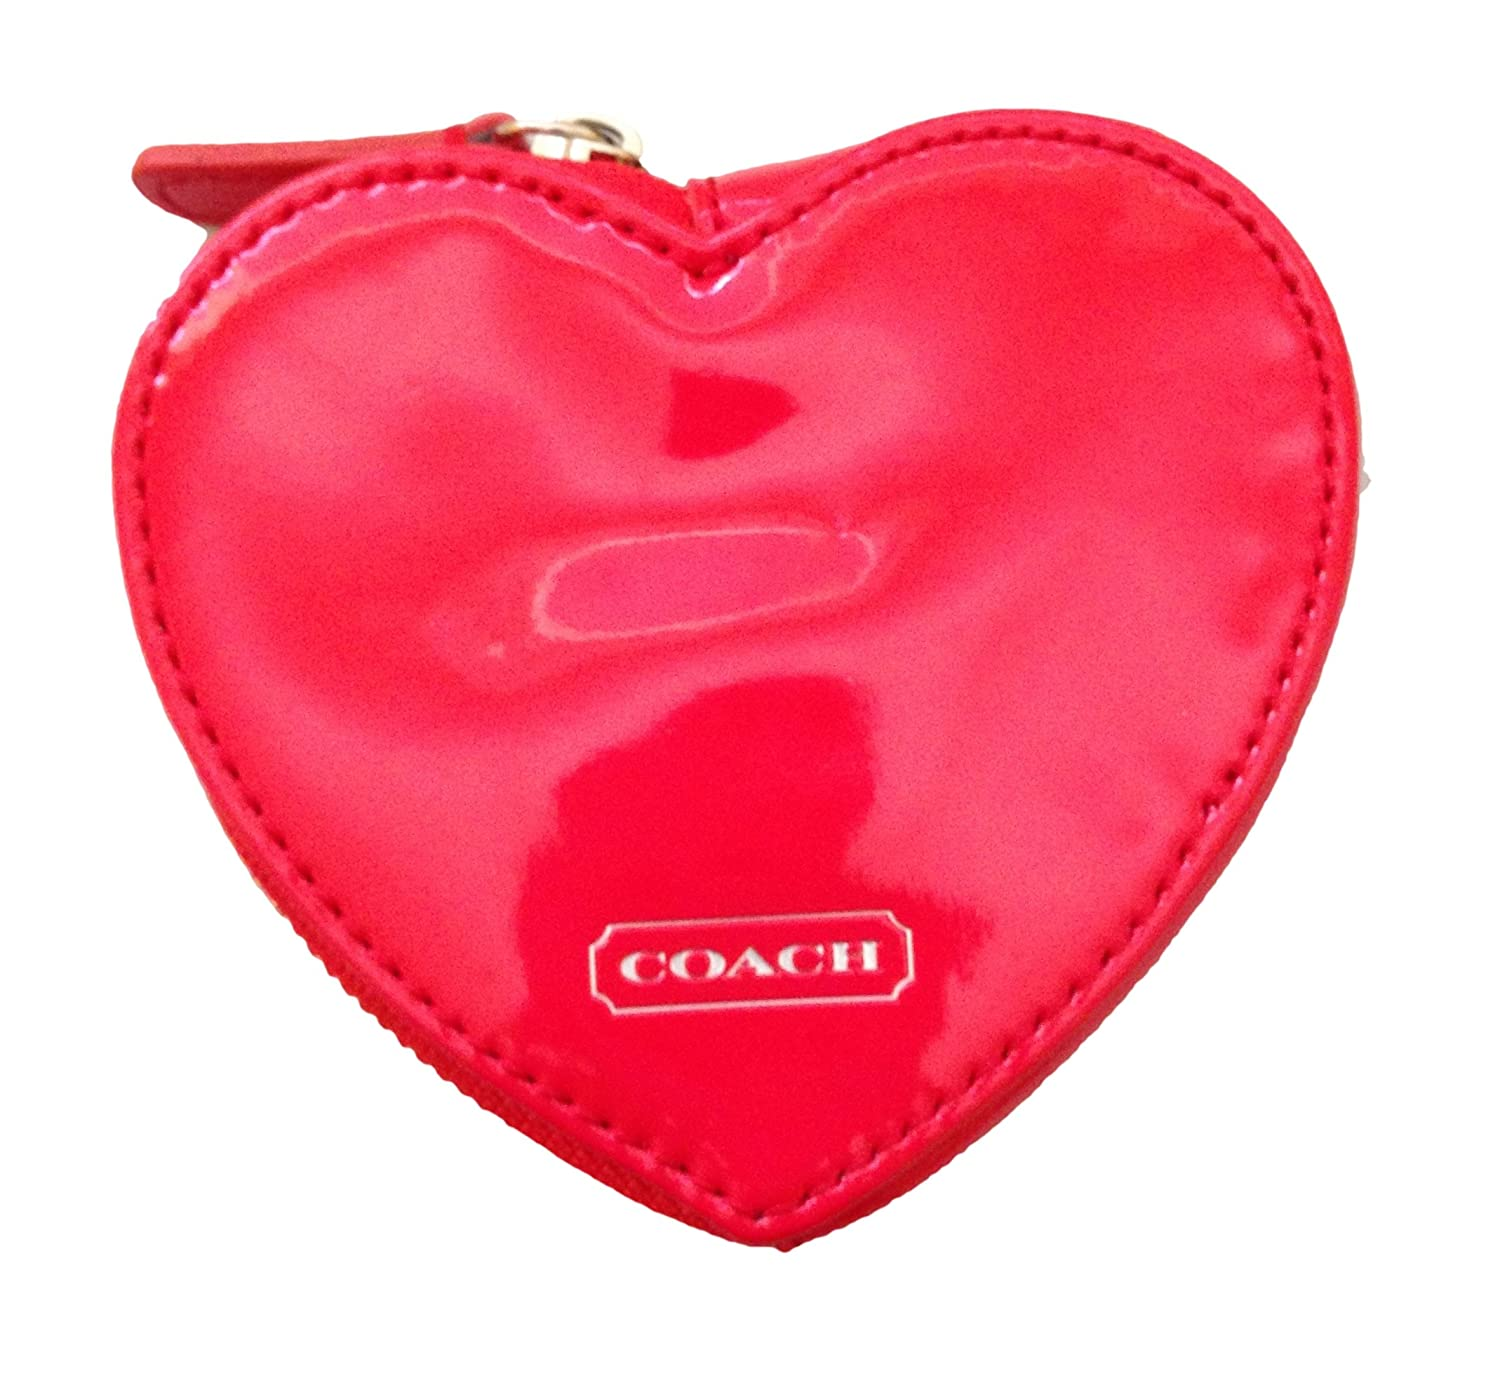 Coach Studded Liquid Gloss Heart Shaped Coin Purse, Red